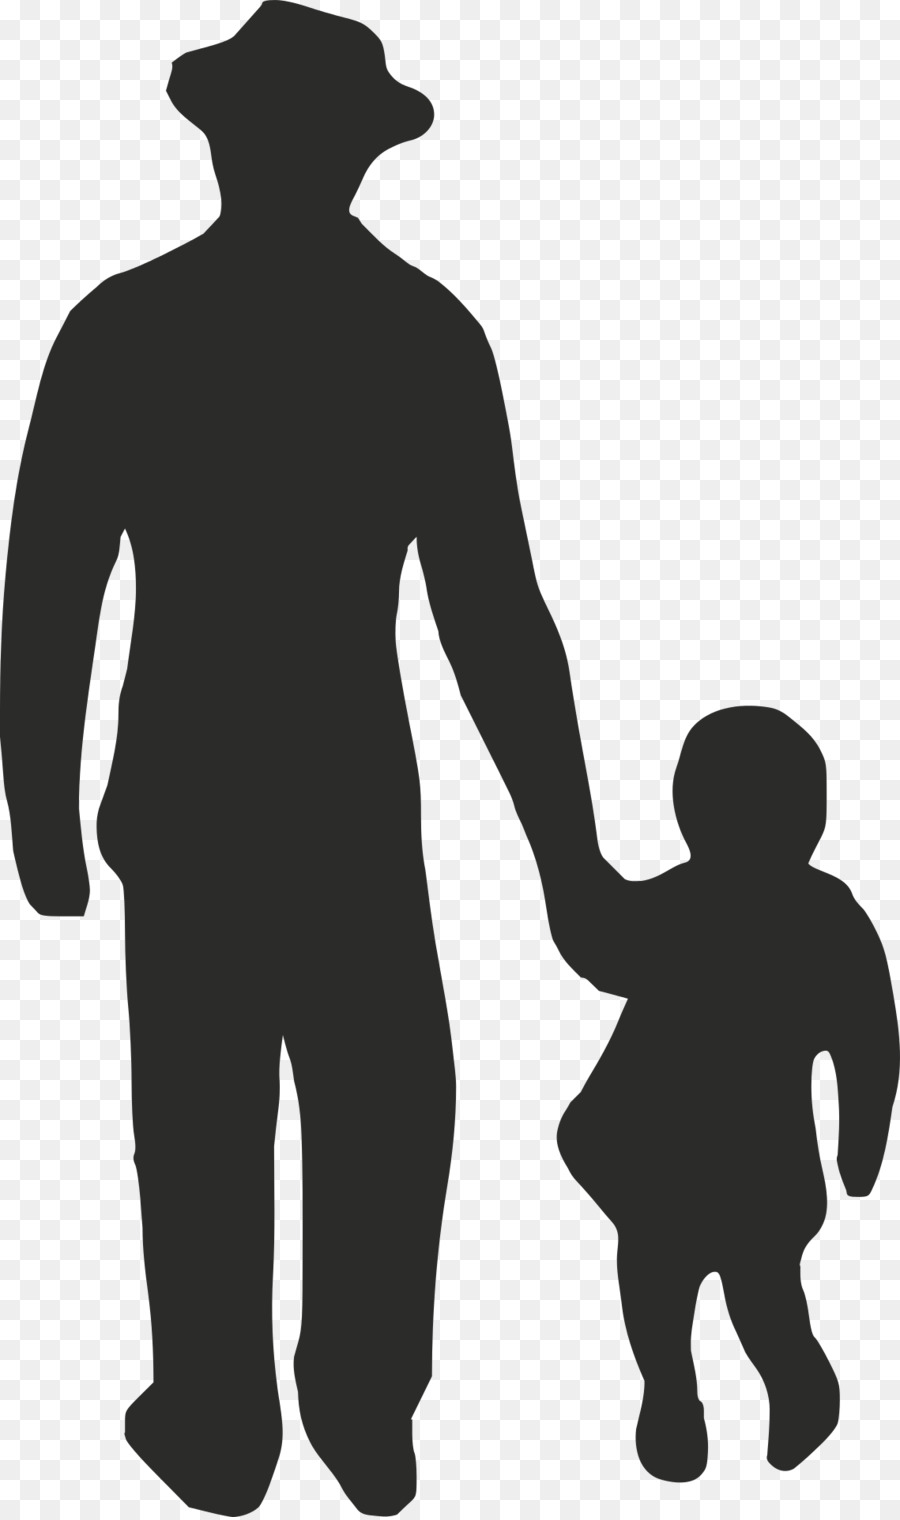 Man cartoon silhouette drawing. Father clipart human standing